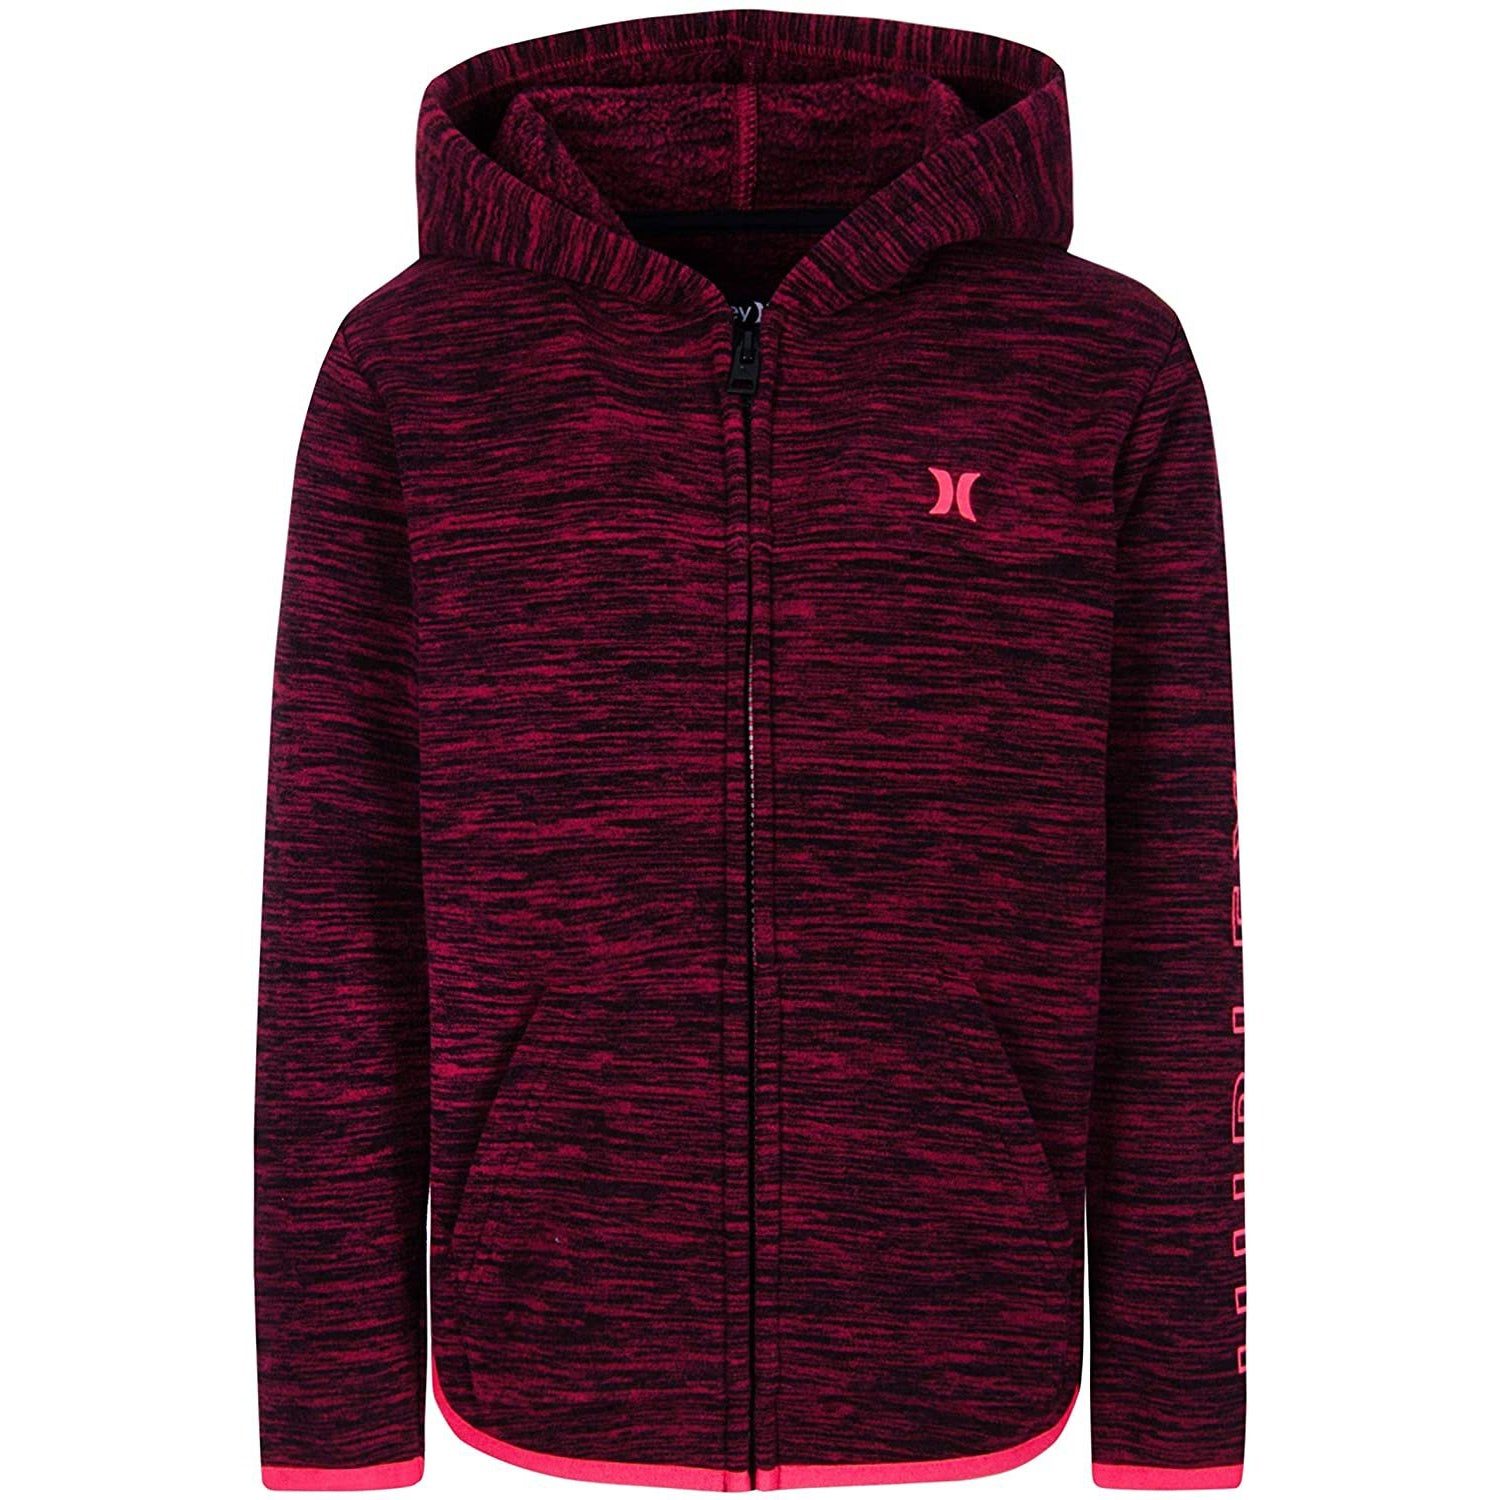 Hurley Boys' Full Zip Sweatshirt